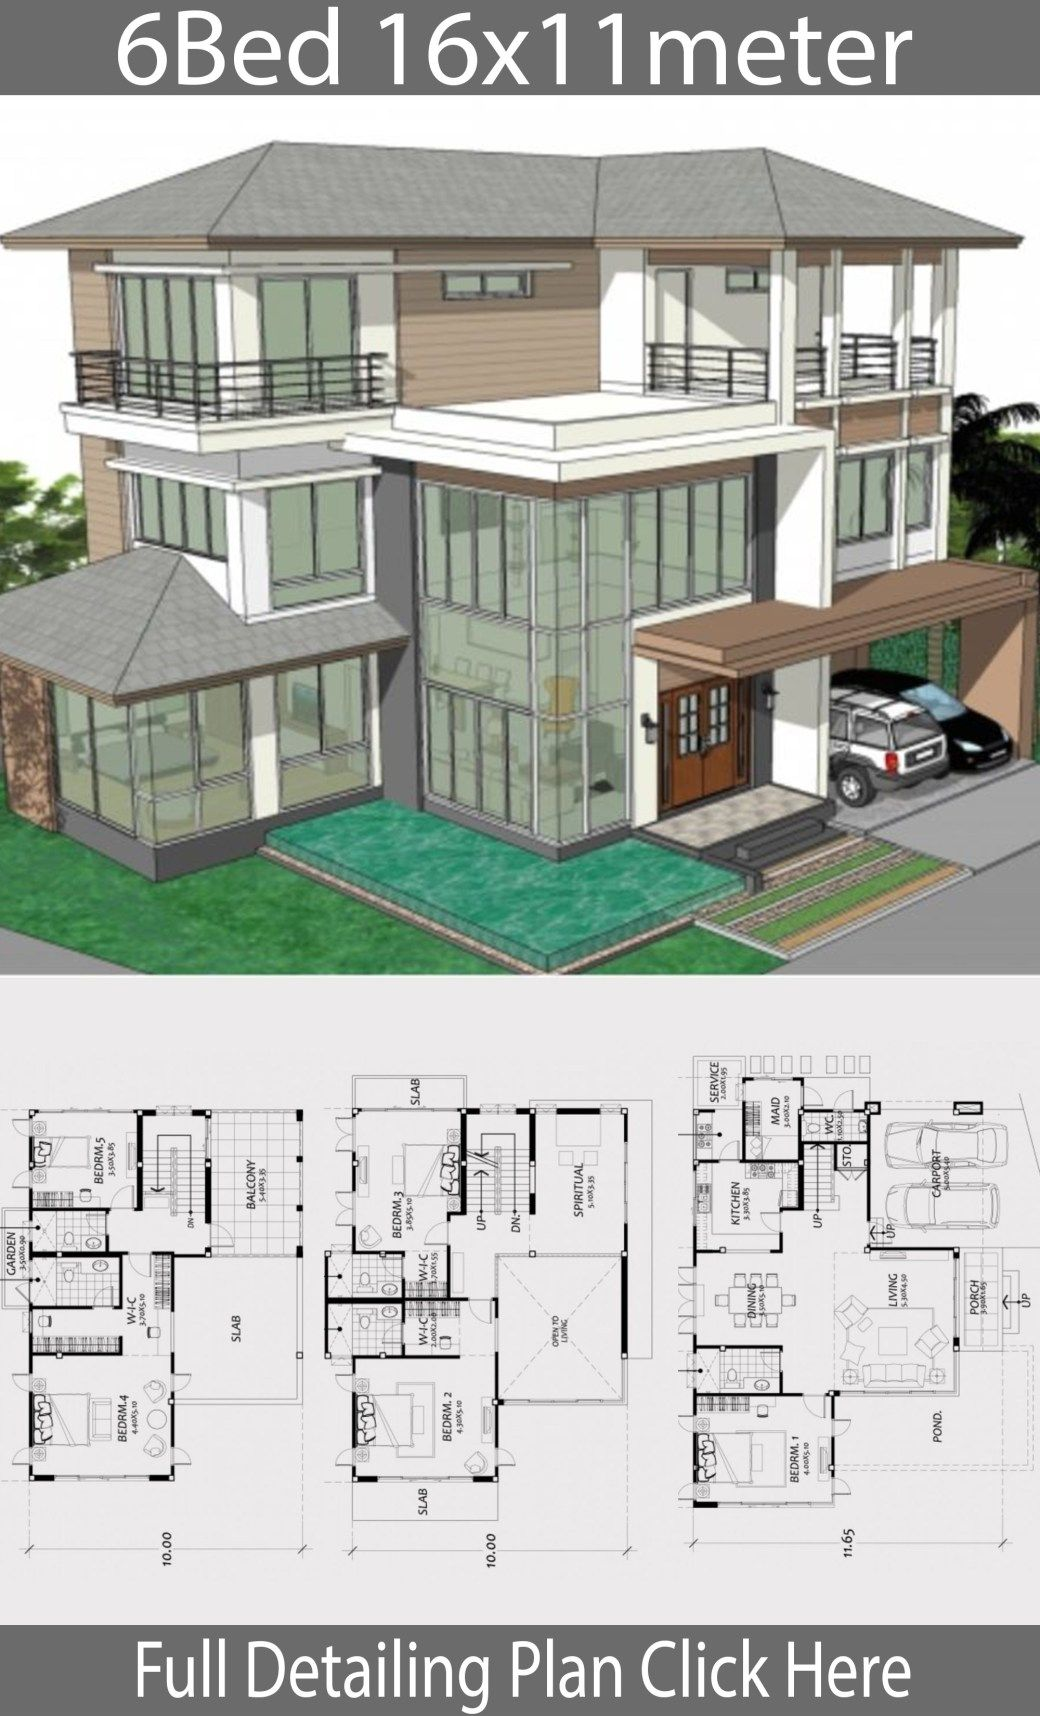 Home Design Plan 16x11m With 6 Bedrooms House Idea In 2020 House Blueprints Architecture Model House Sims House Plans